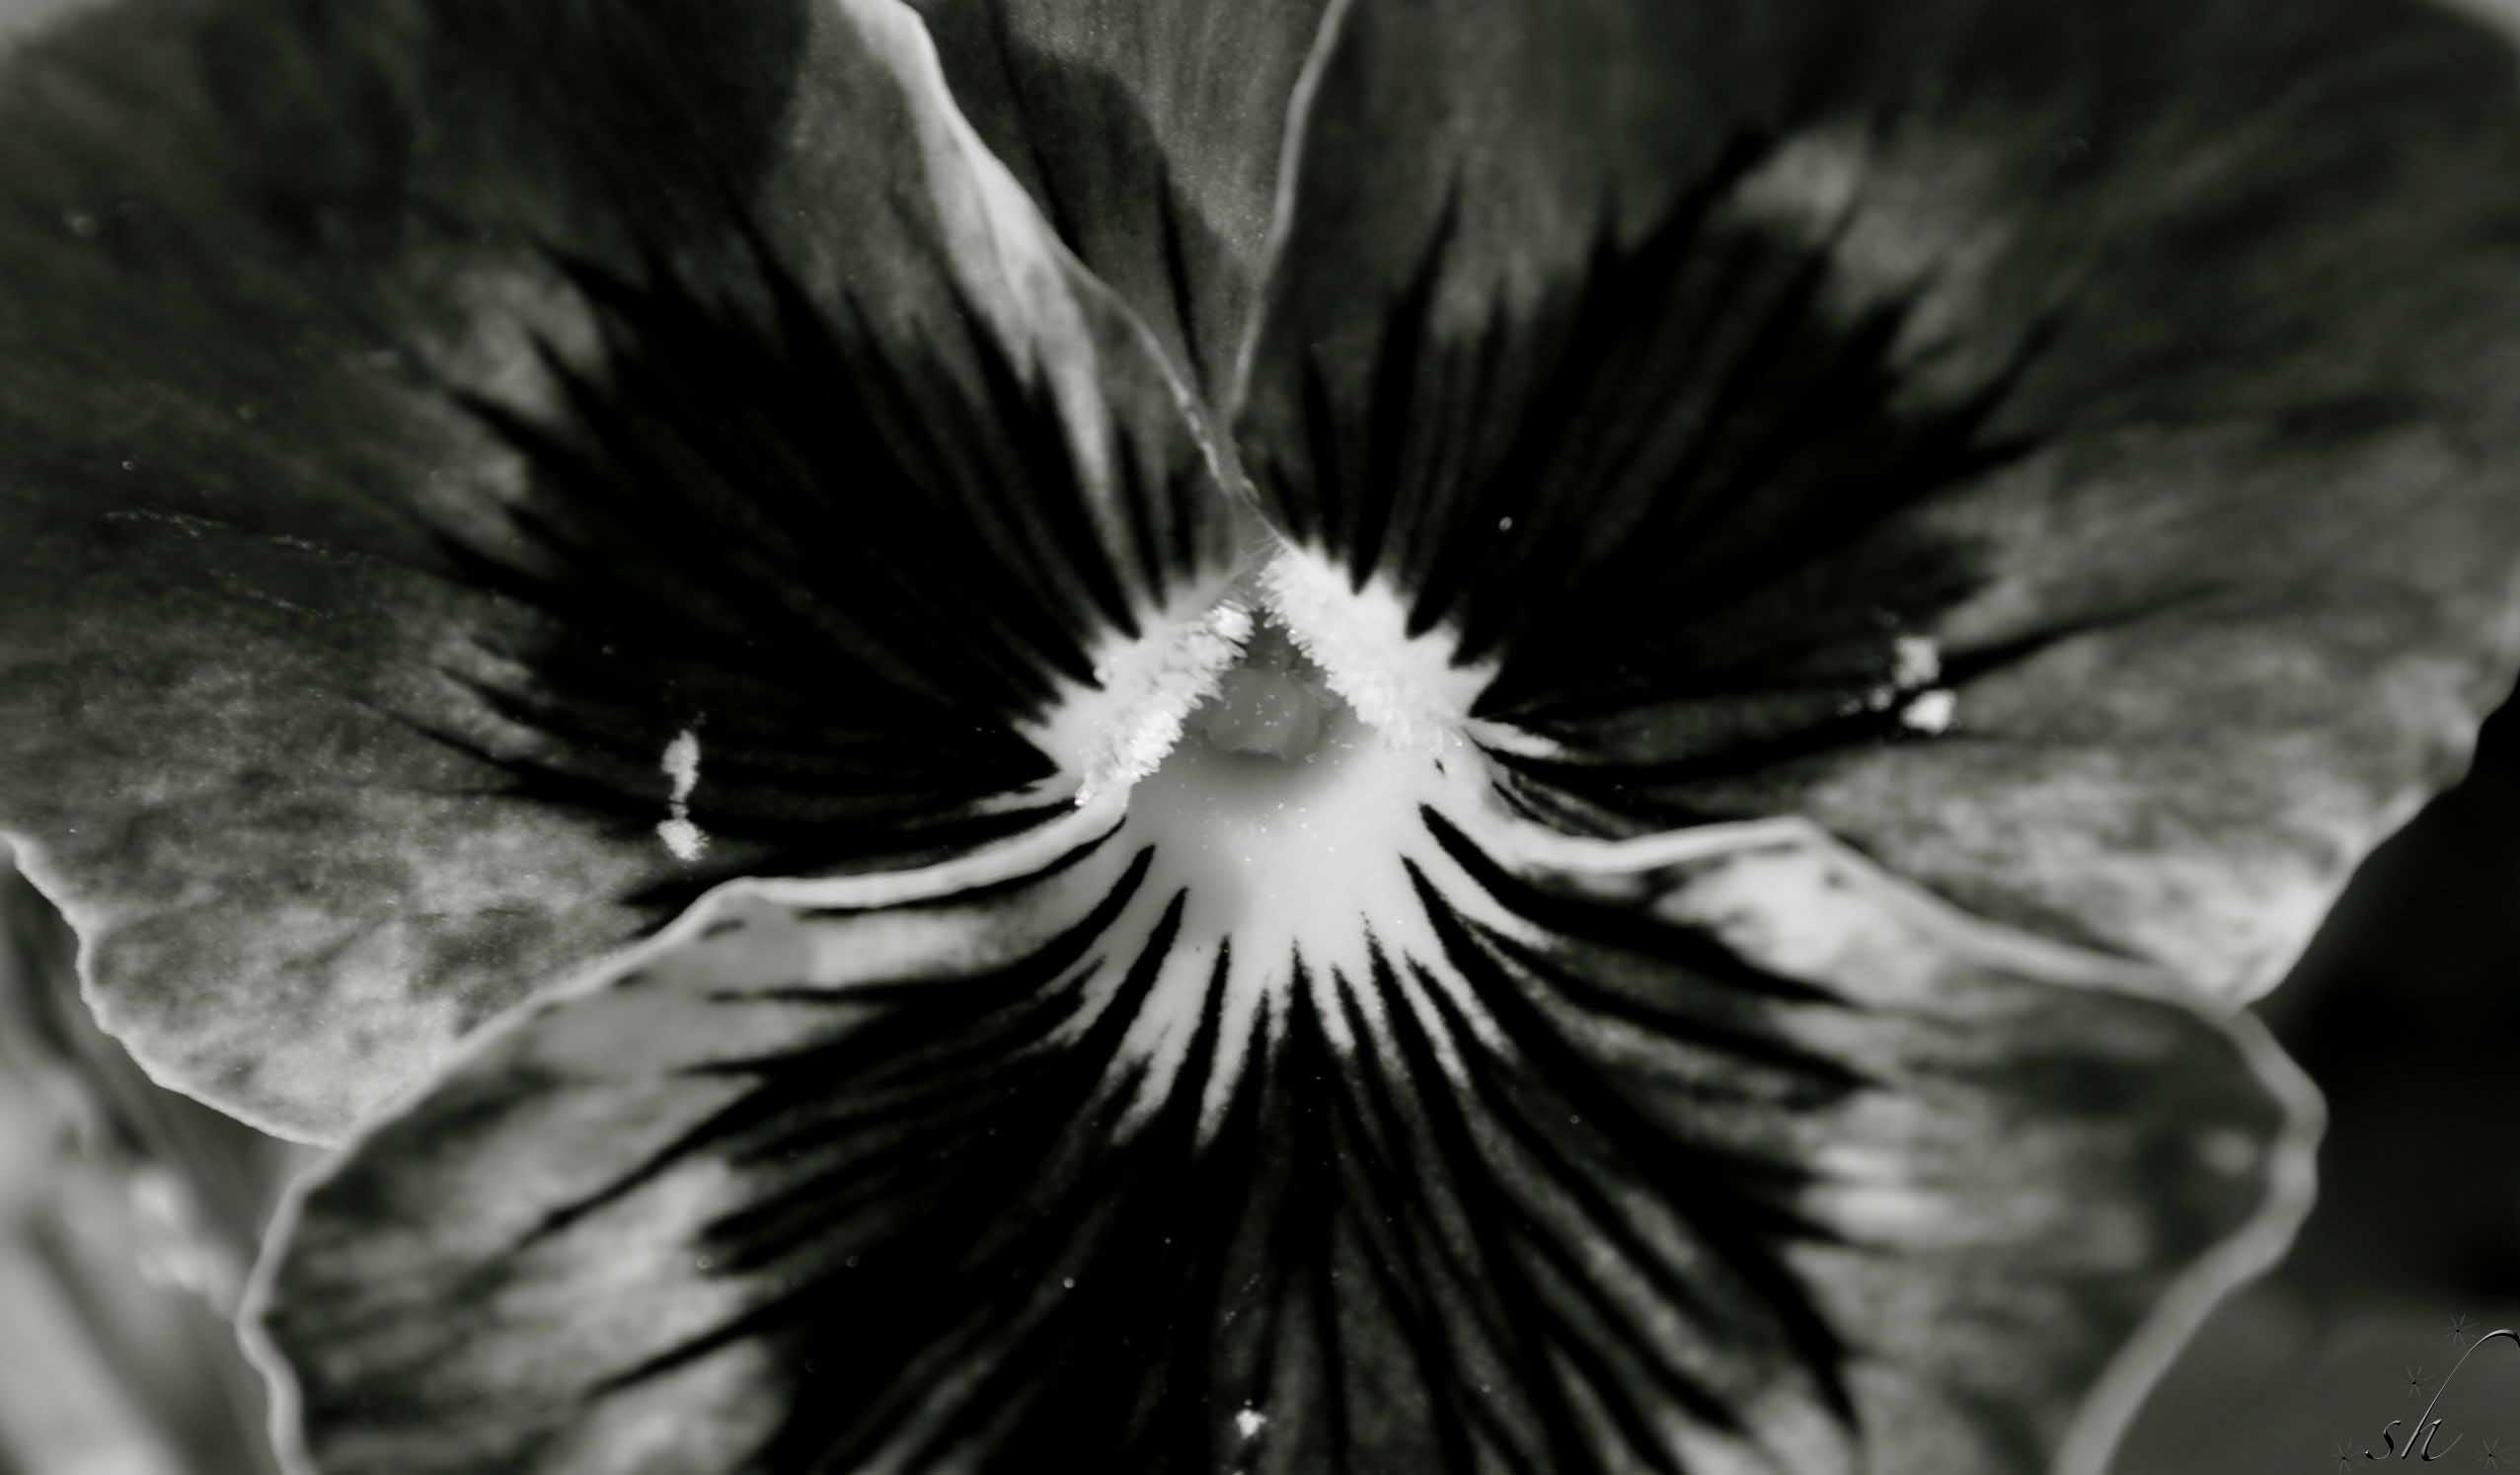 Black and white flowers still make me happy  stunningly